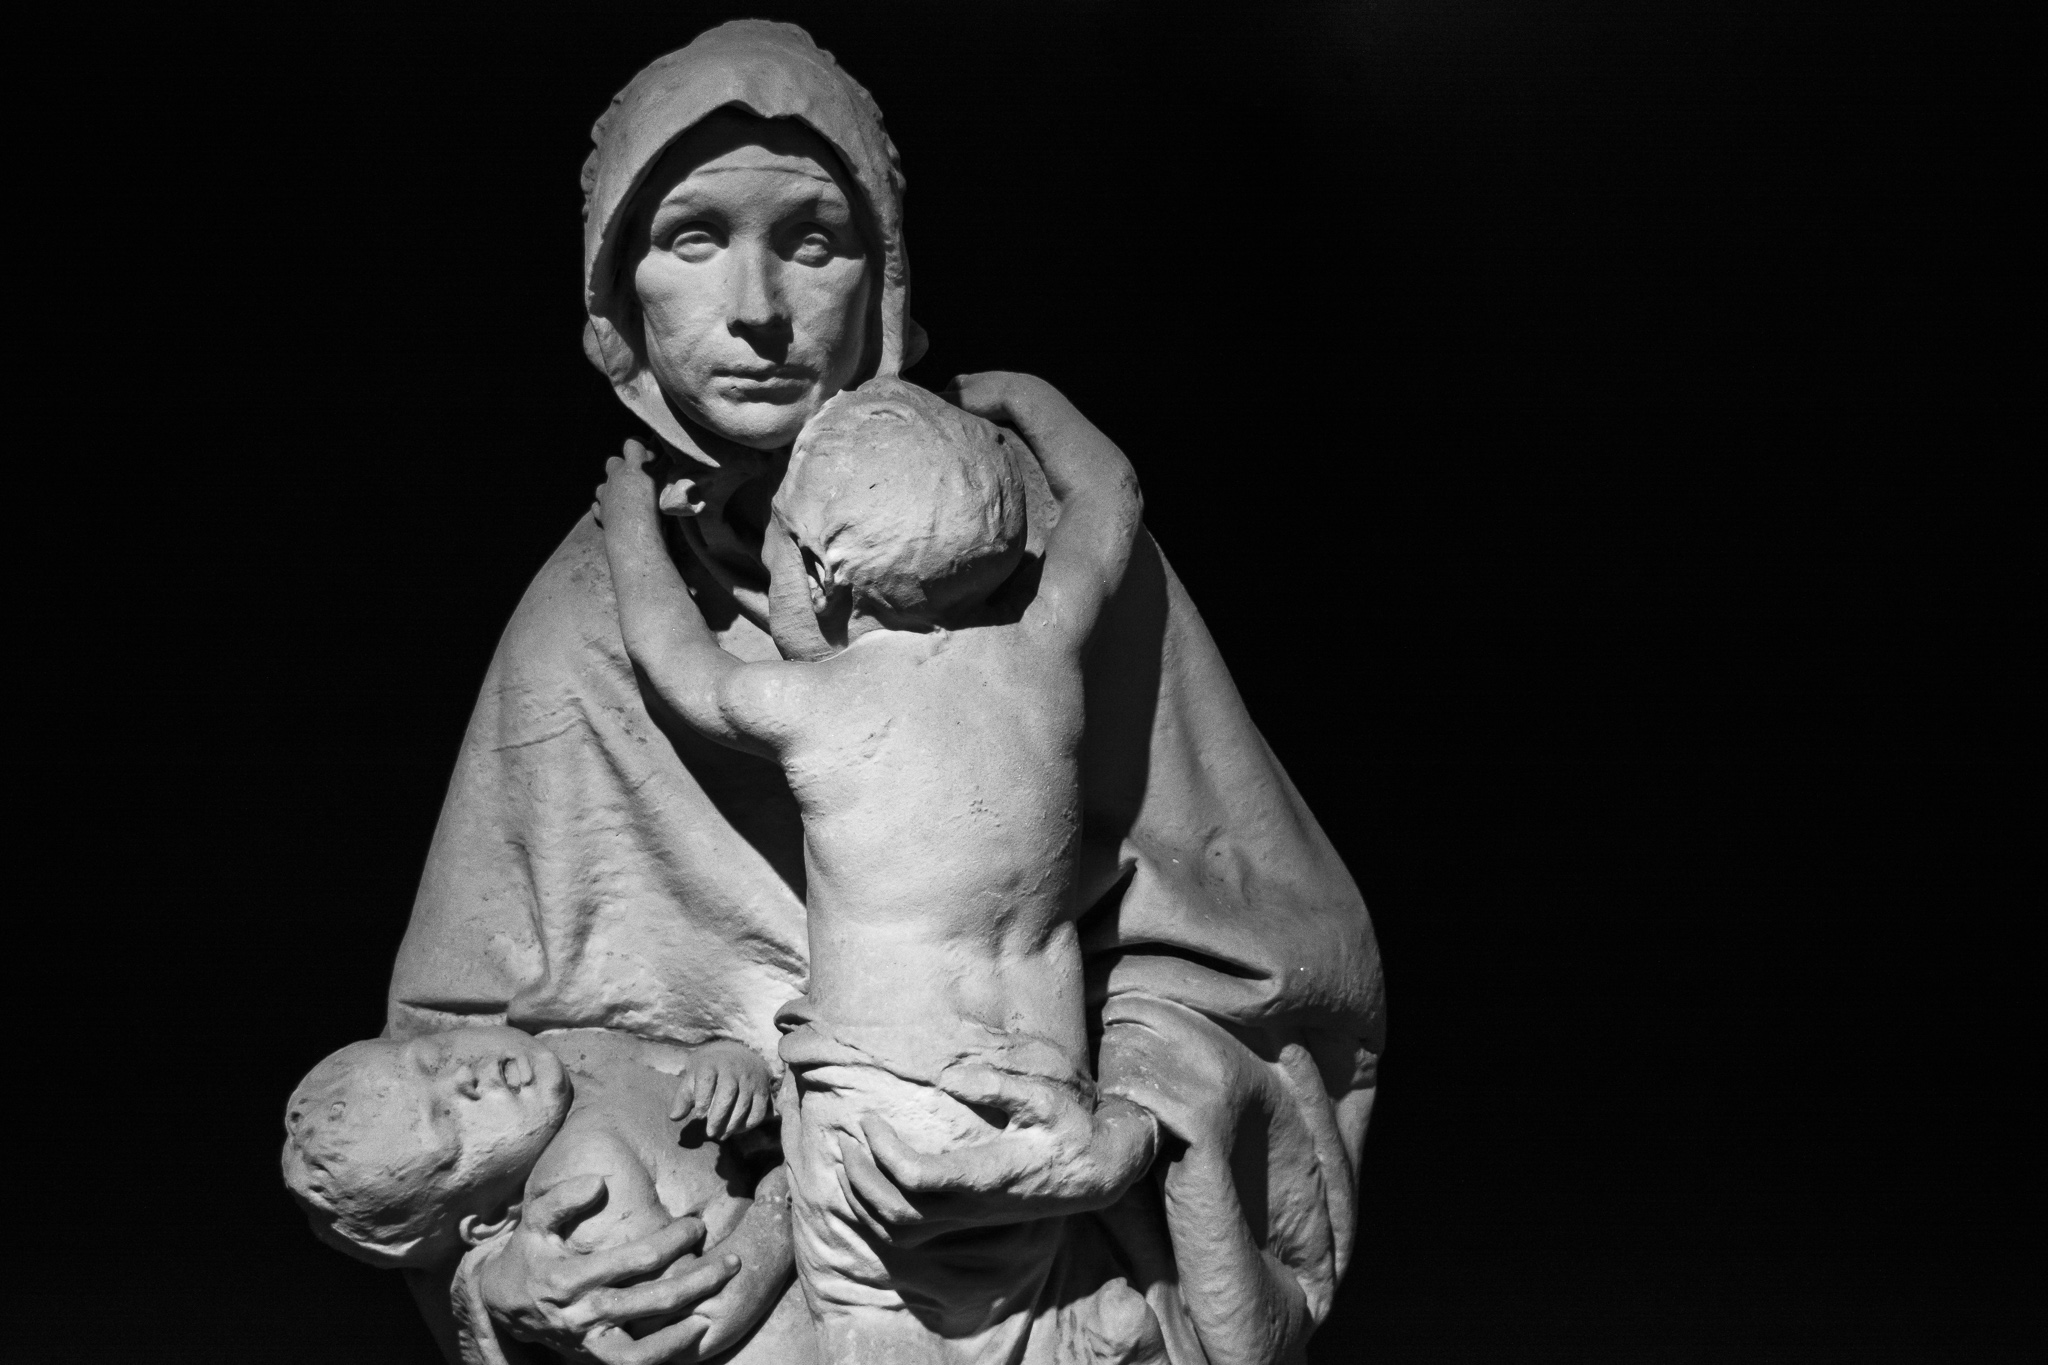 The work of the sculptor Teixeira Lopes, 'A Caridade', is exhibited in the museum of the church of San Francisco in the city of Oporto, Portugal.